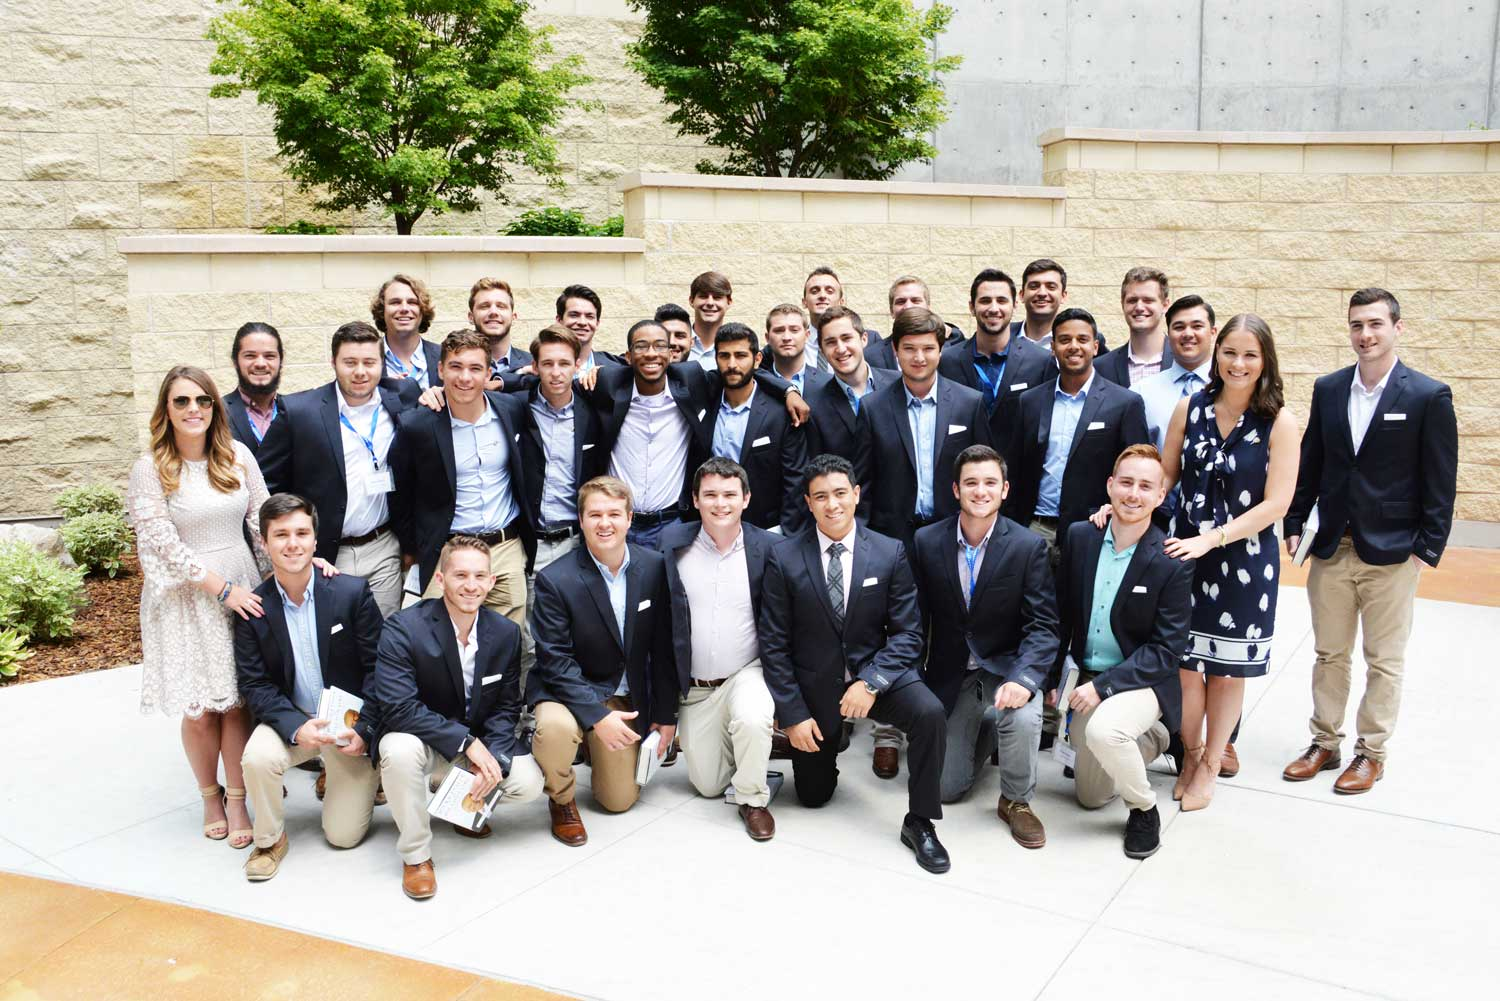 2017 20K club in Sigma Chi Friendship Garden at Huntsman Cancer Institute